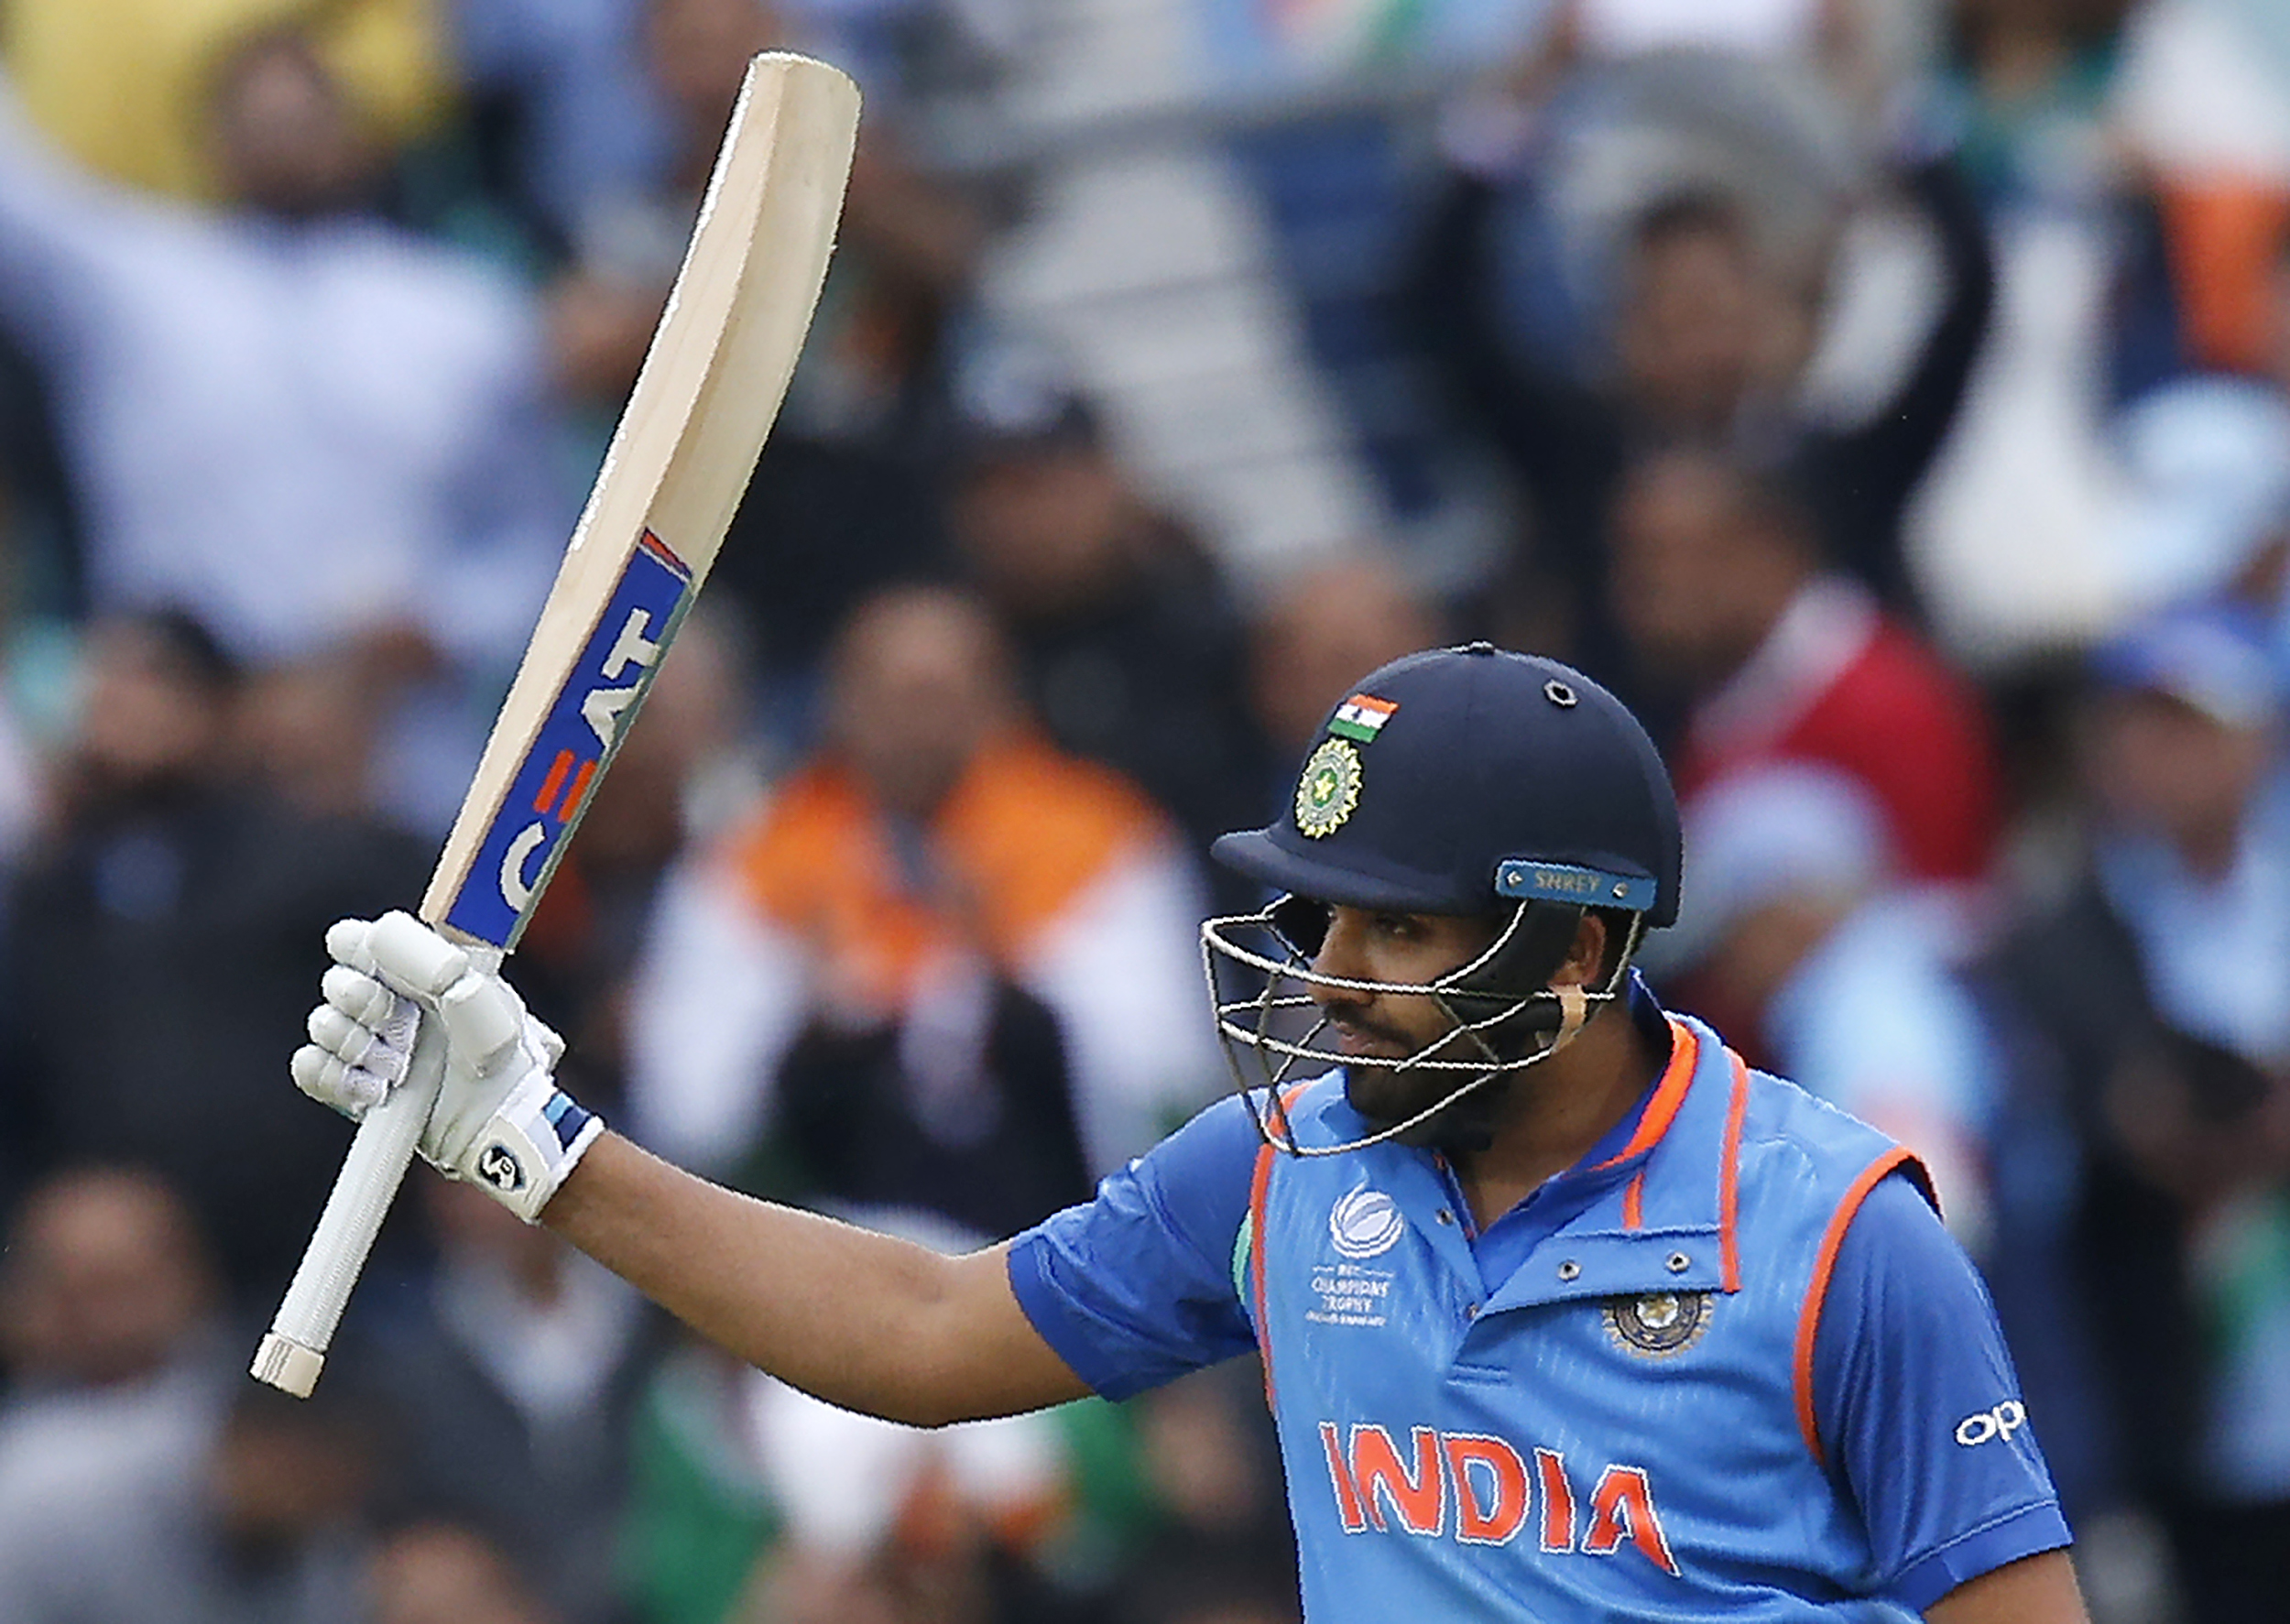 Rohit Sharma's India comeback is going quite well. Photo: AFP.